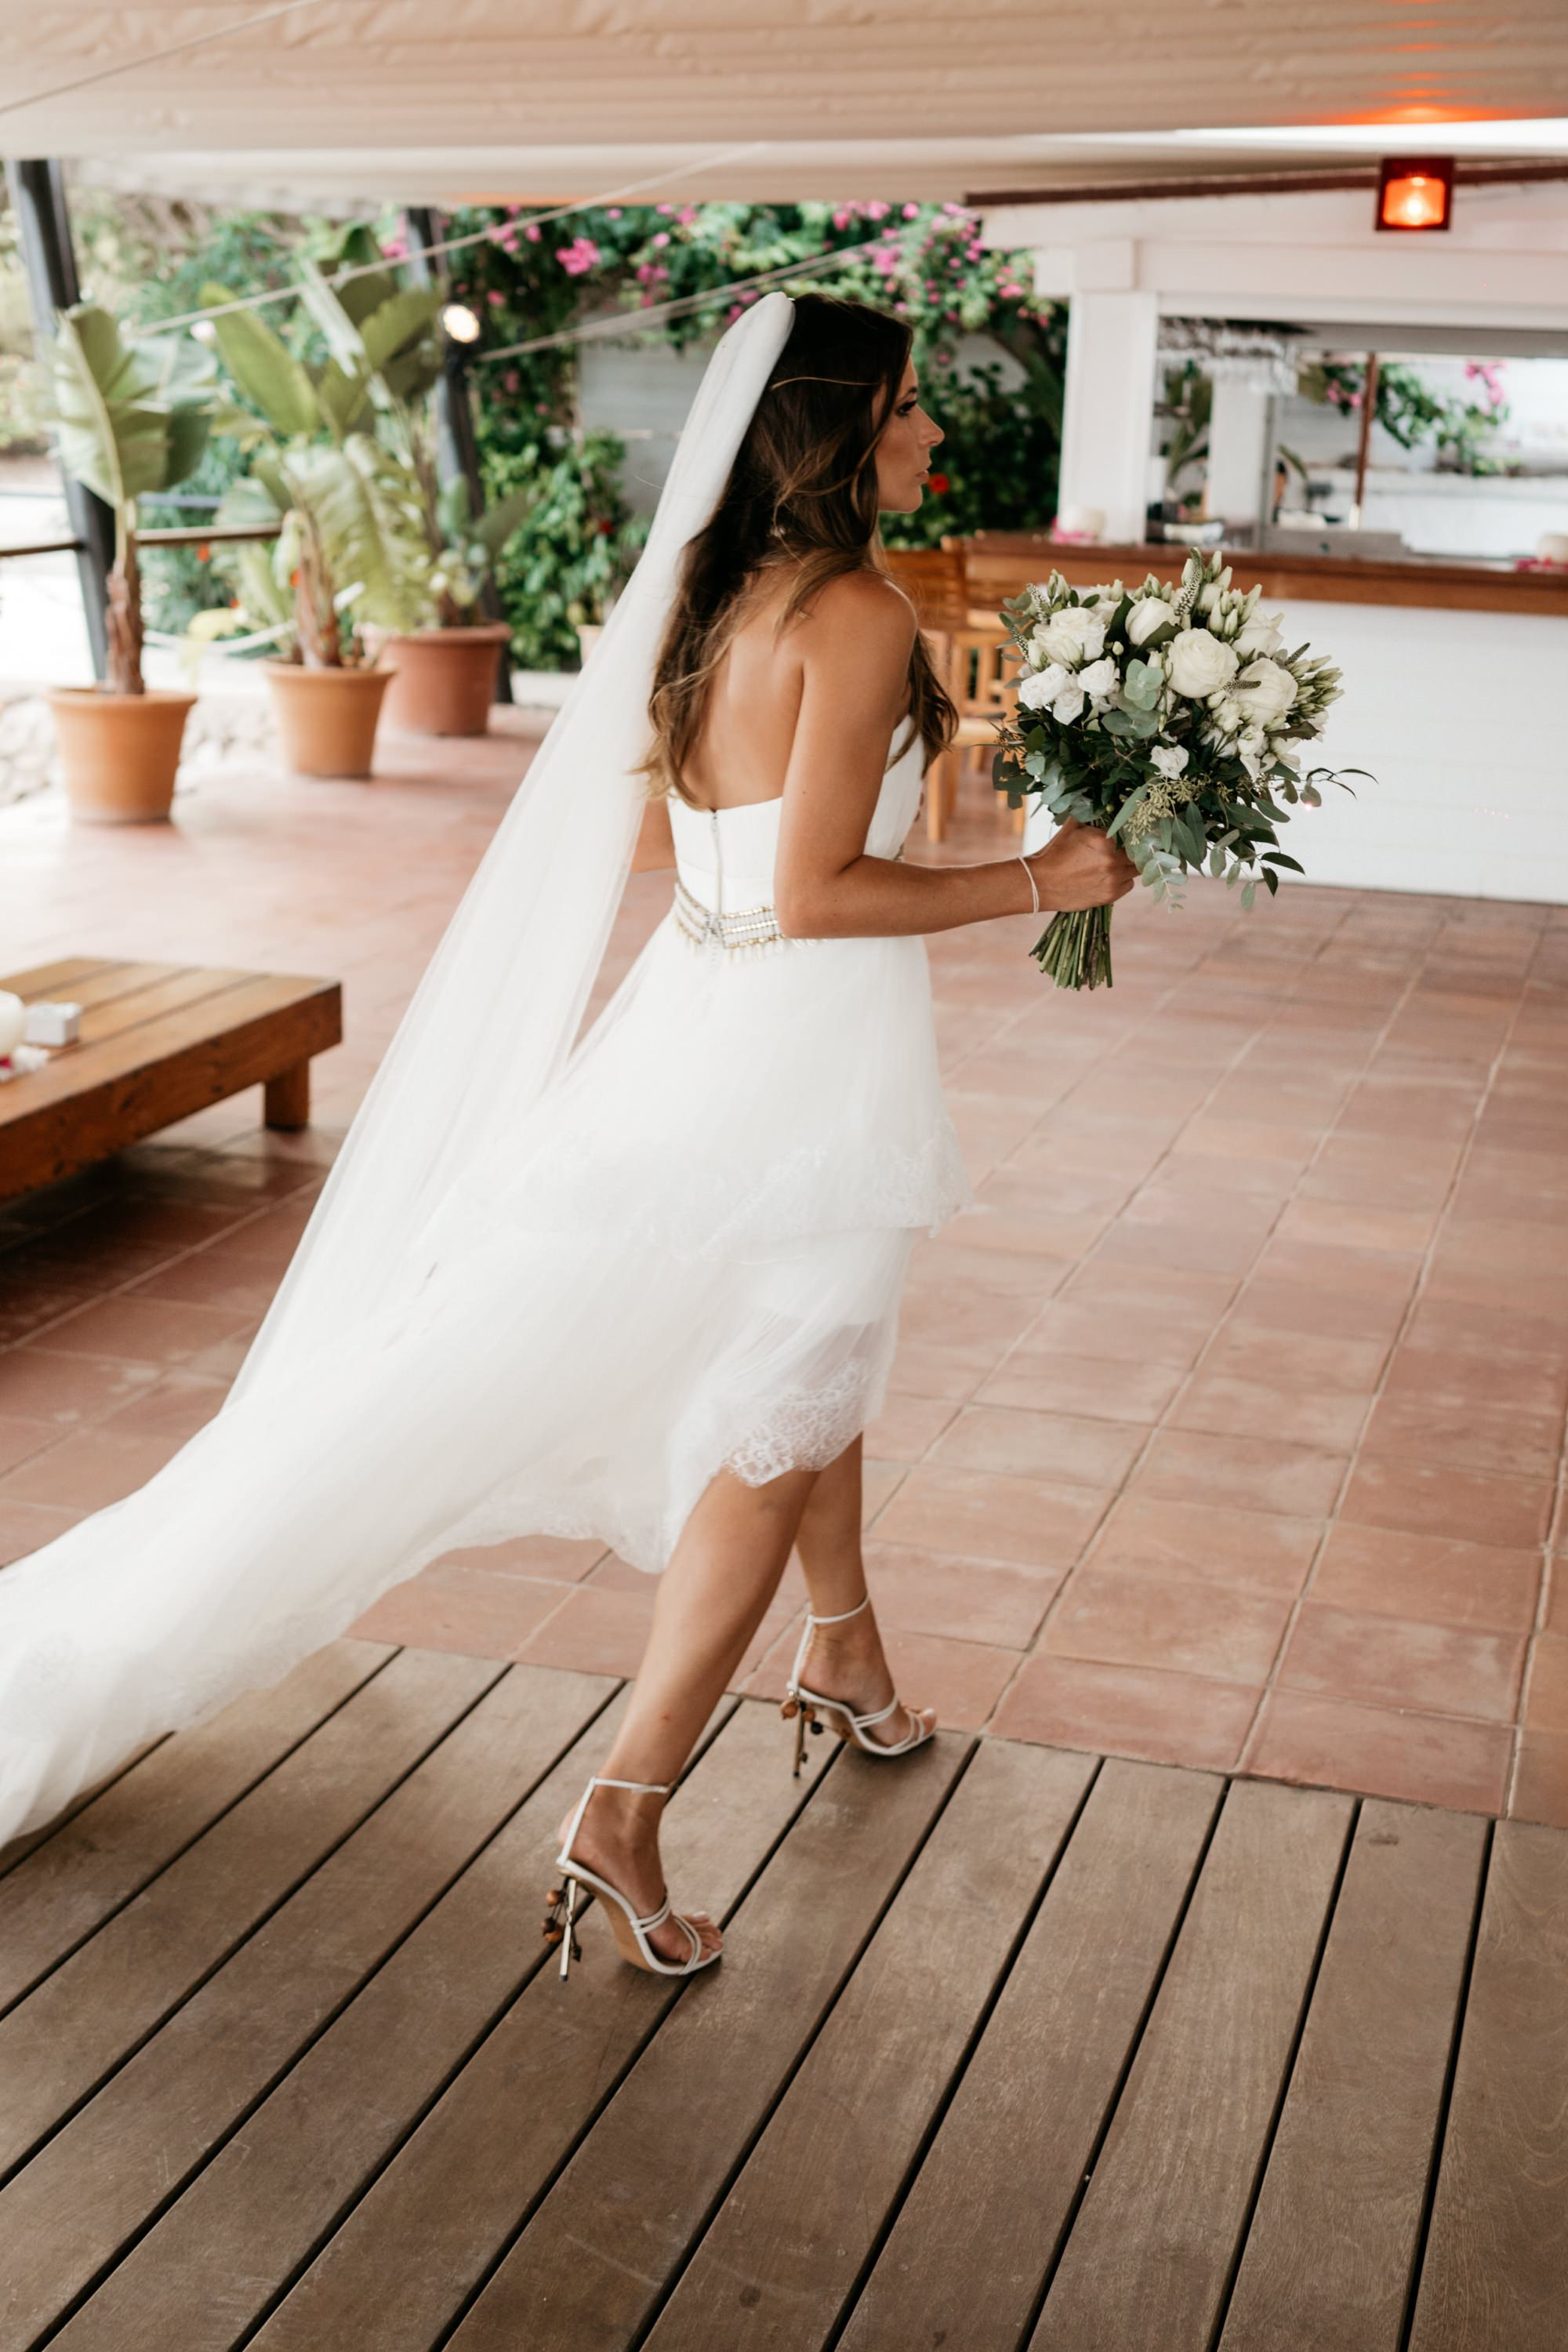 natural wedding photo destination la escollera ibiza 0047 1